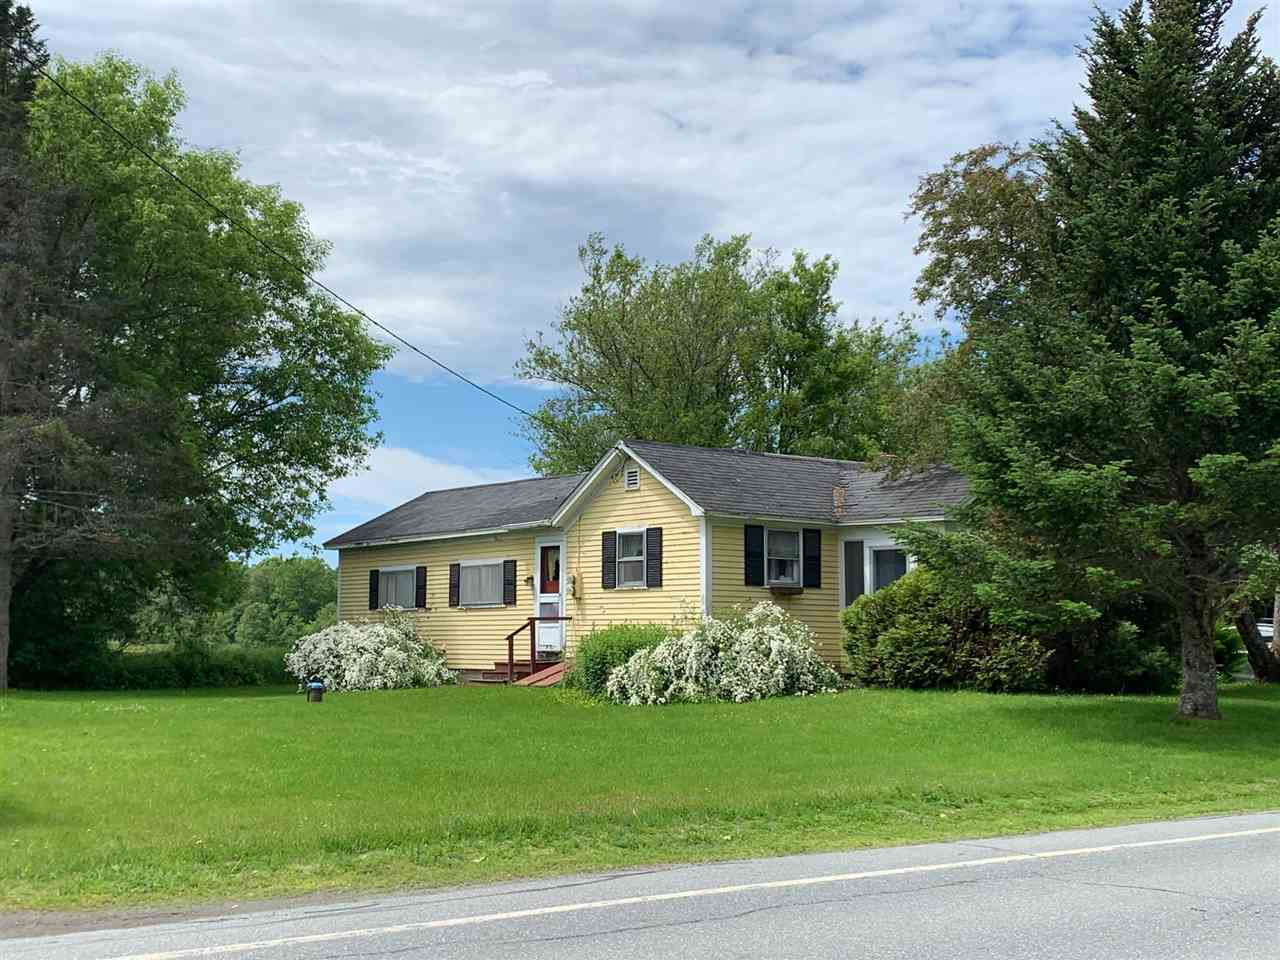 MLS 4758877: 362 VT RT 244 Road, Thetford VT